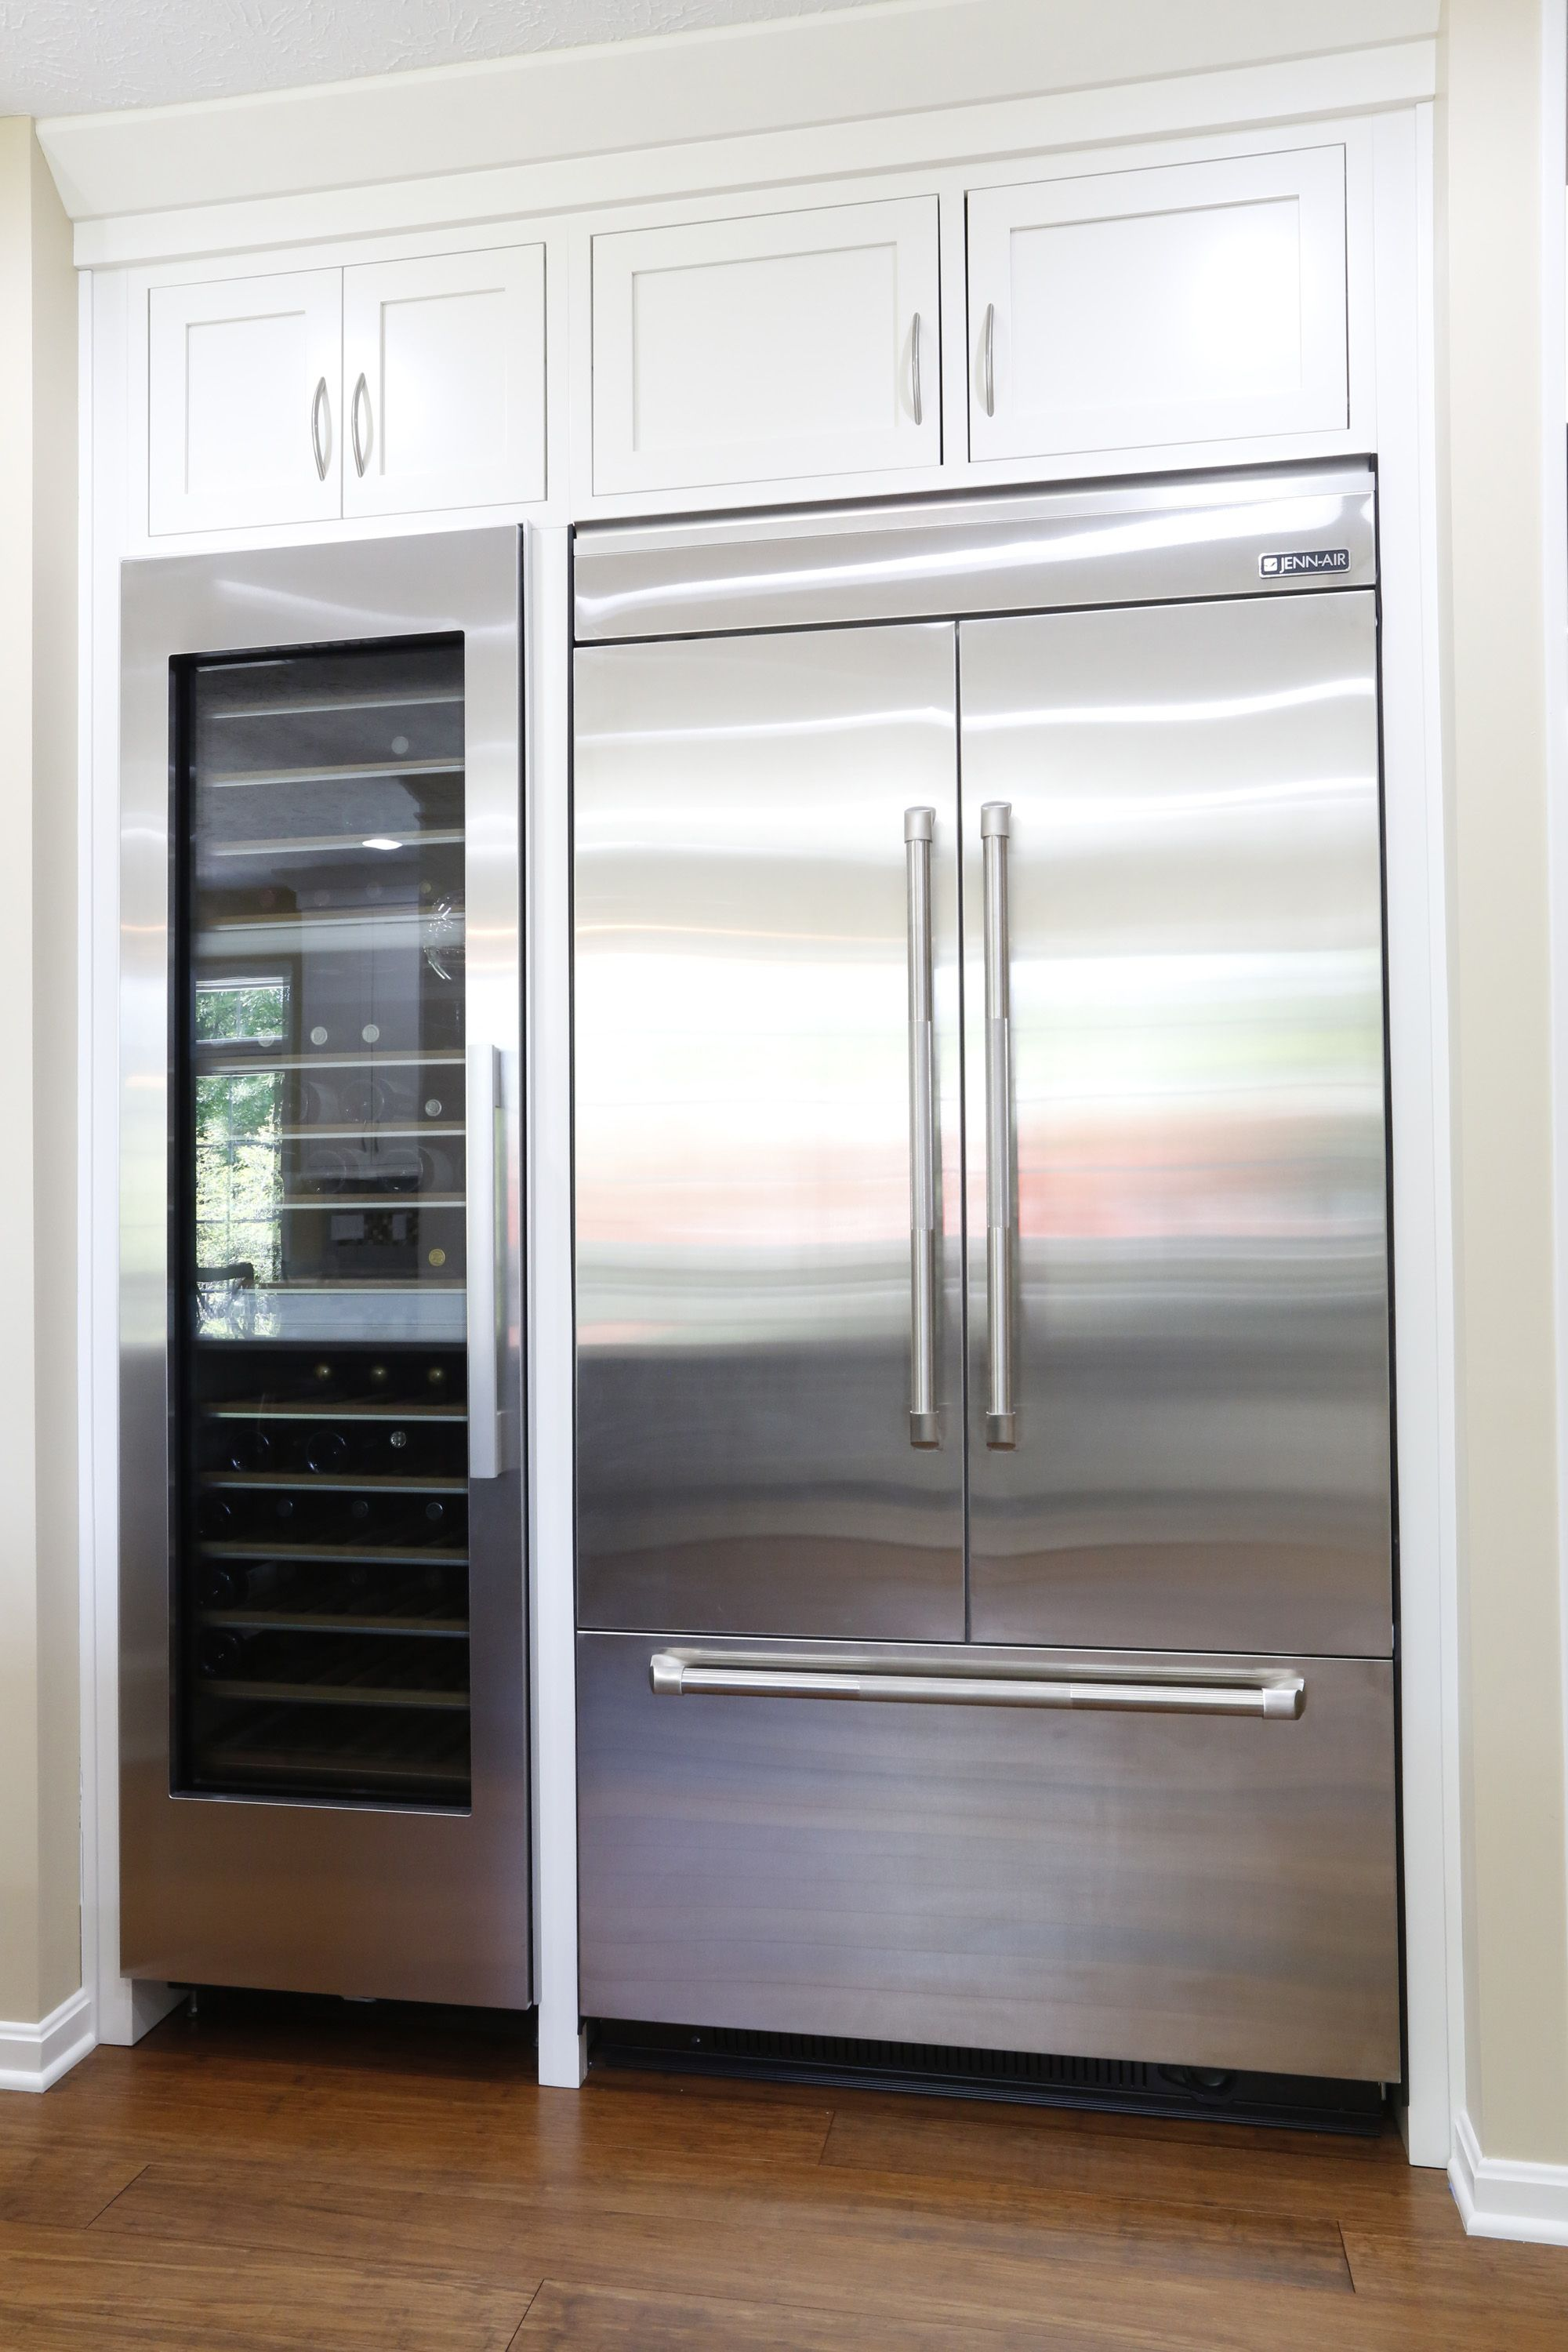 Jenn Air 42u201d Integrated Built In French Door Refrigerator Next To A Miele  Wine Fridge Has This Kitchen Ready And Prepared For The Everyday To The  Most ...